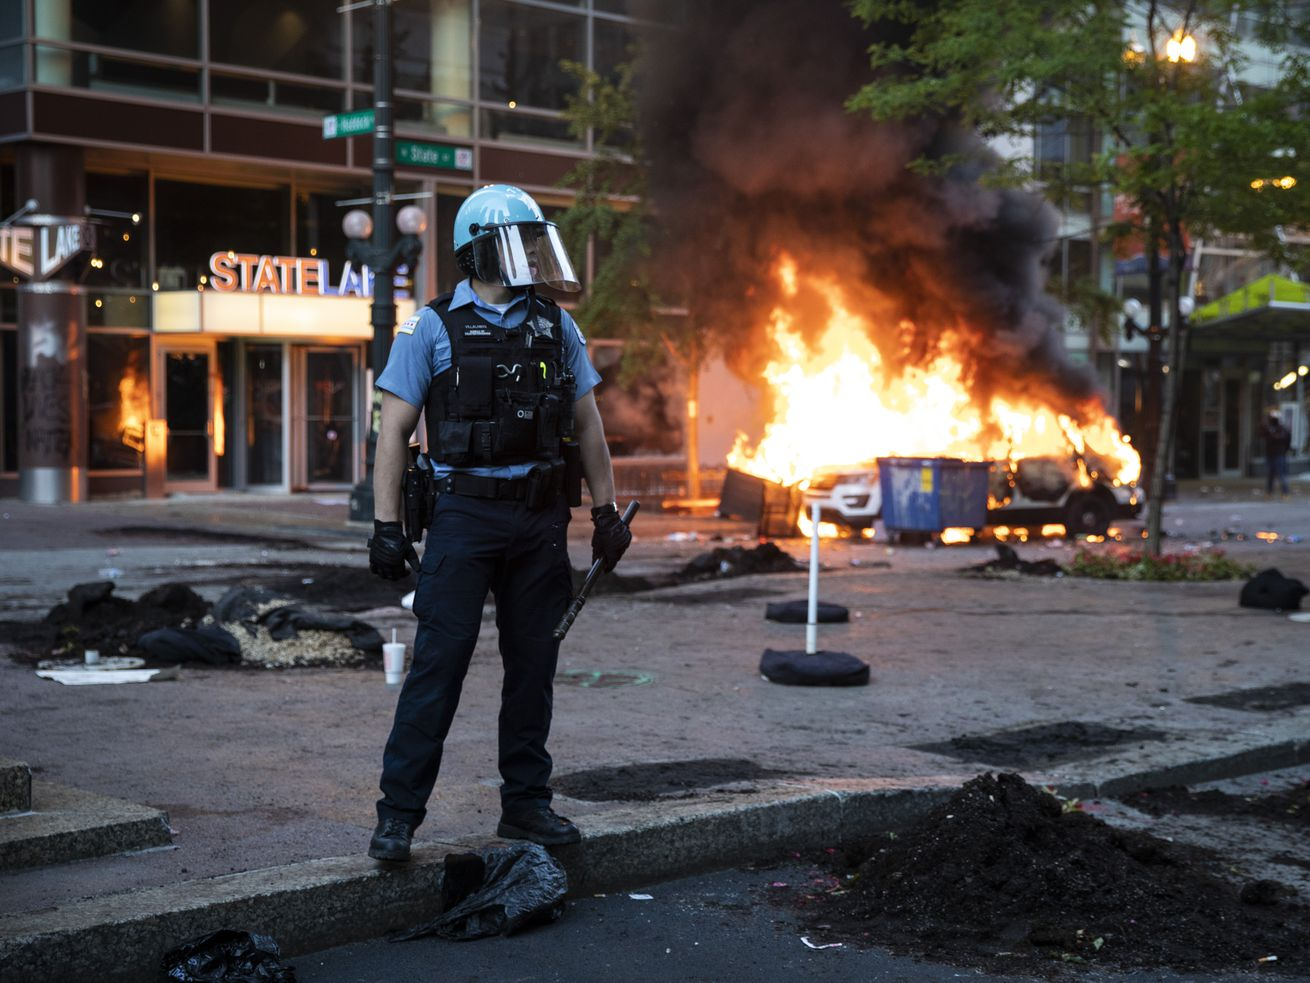 A Chicago Police Department SUV is on fire near State and Lake streets in the Loop on May 30, 2020, as thousands of protesters in Chicago joined national outrage over the killing of George Floyd in Minneapolis police custody.